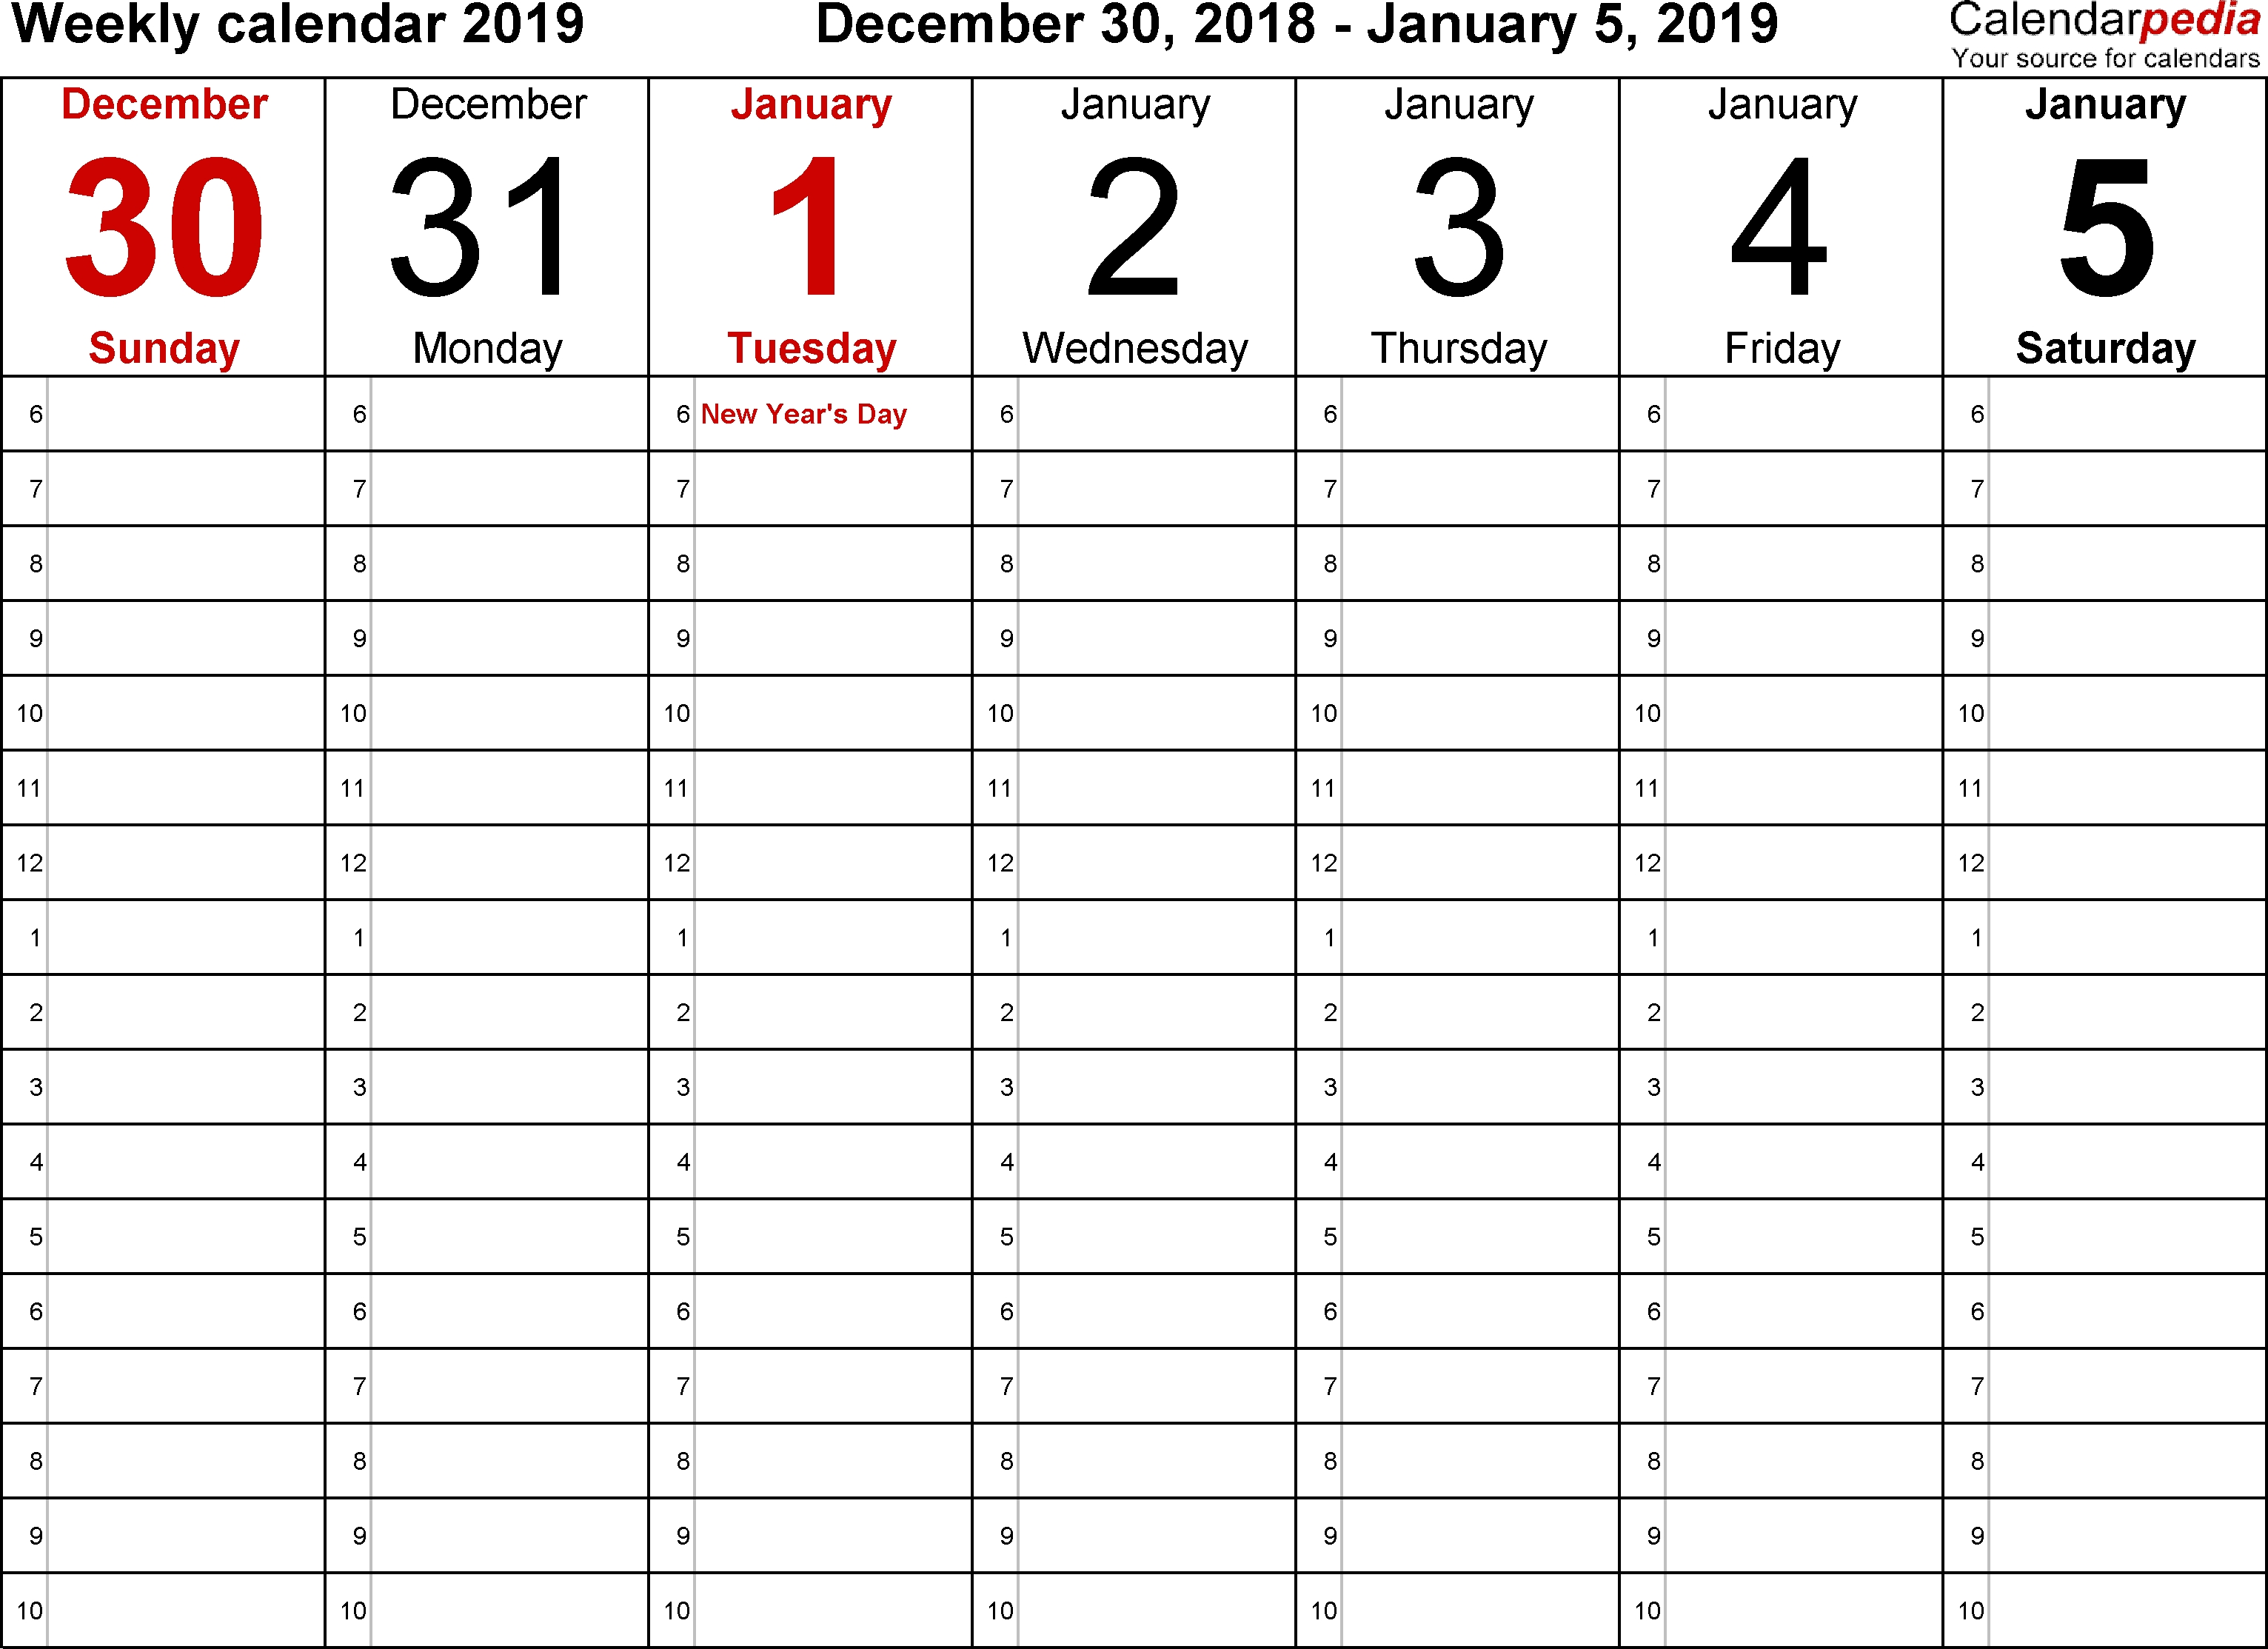 Weekly Calendar 2019 For Word - 12 Free Printable Templates-5X8 Calendar Free Template